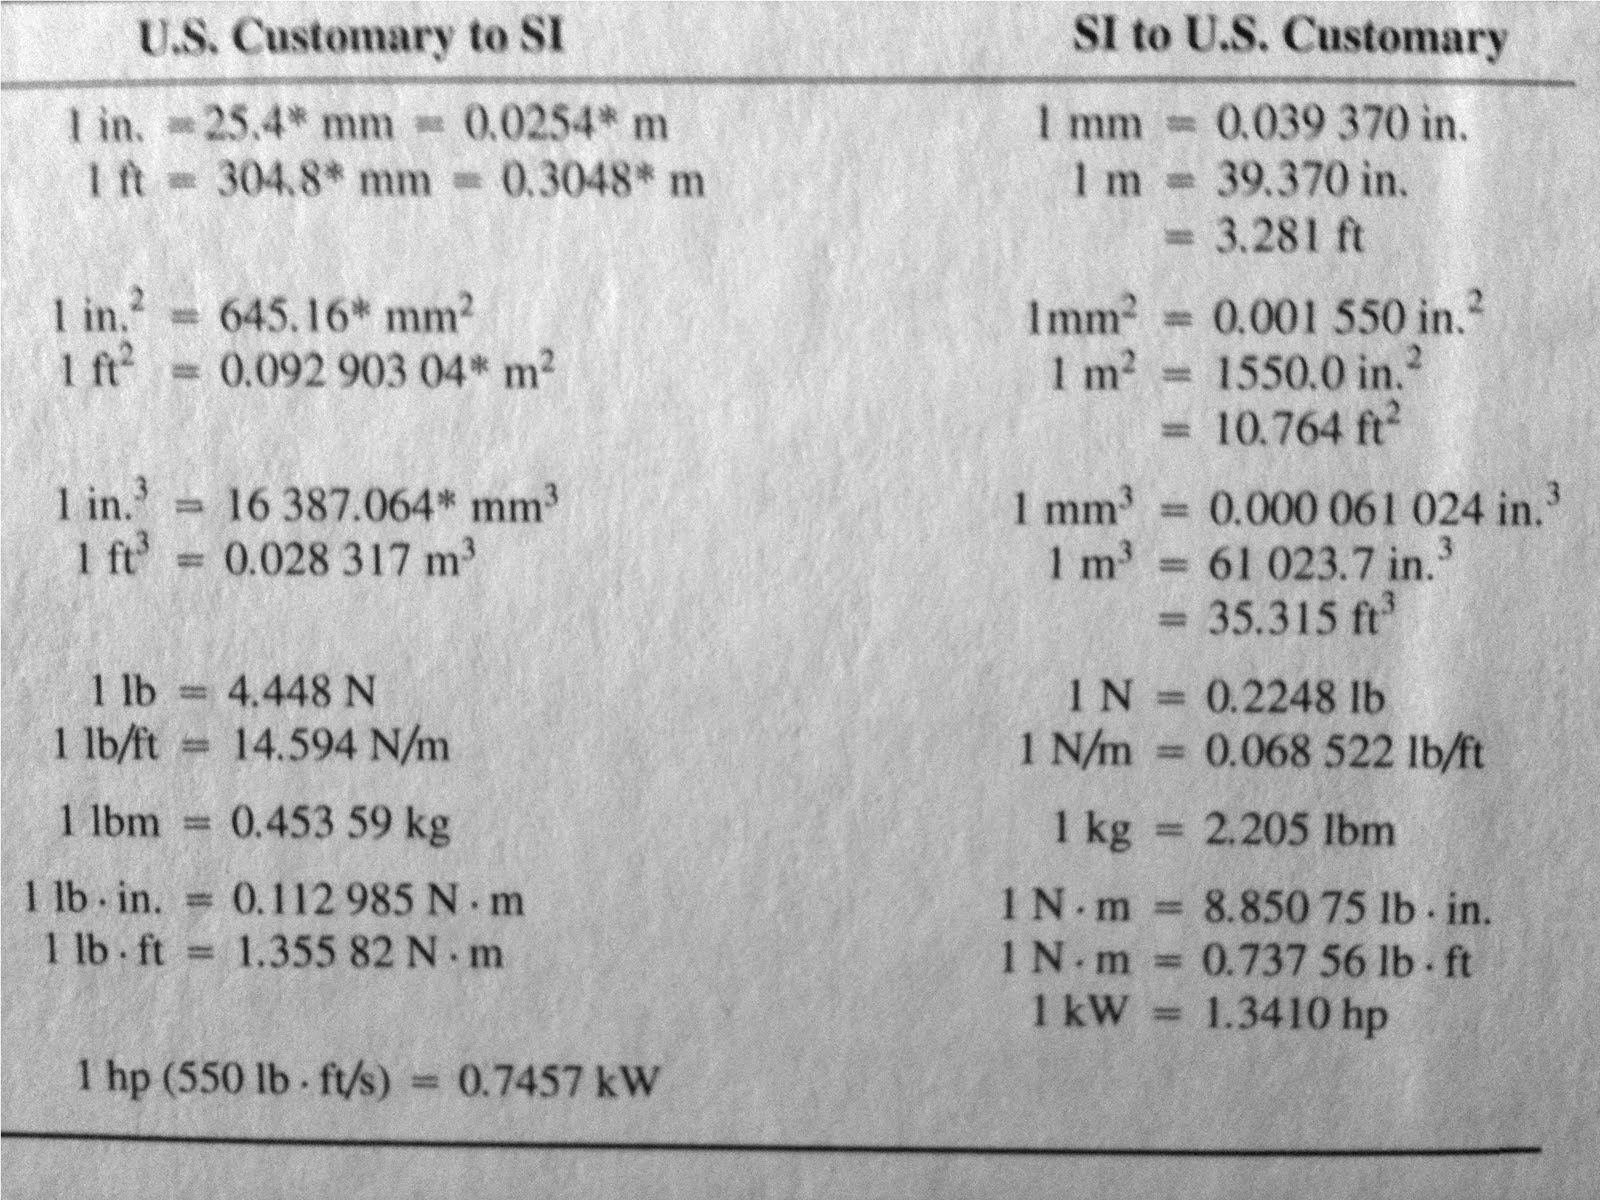 Equivalence of U.S Customary and SI Units